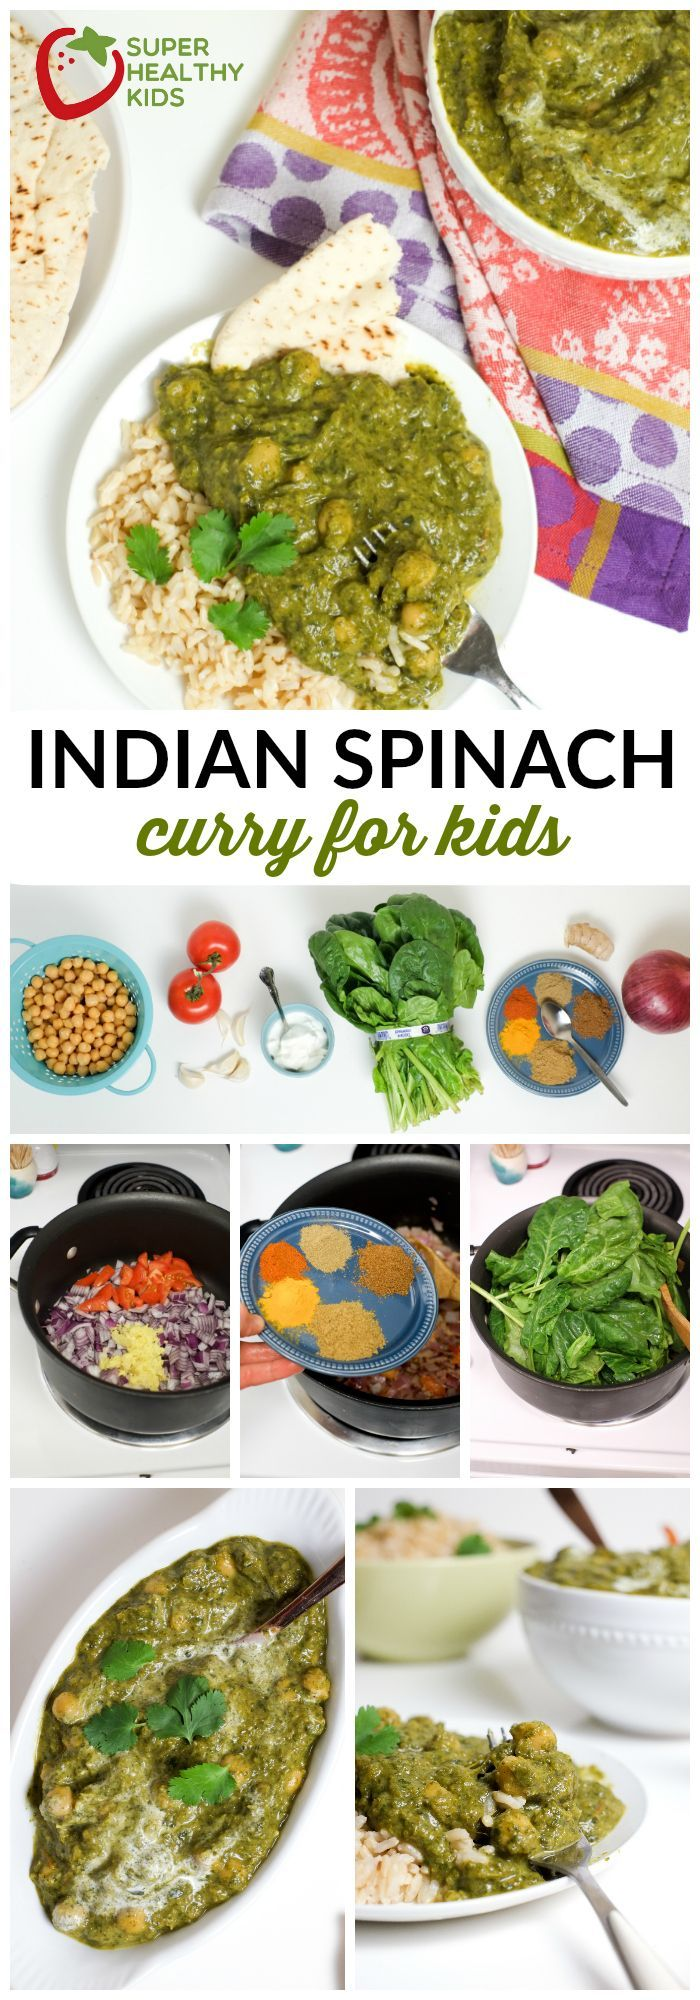 Indian spinach curry for kids recipe super healthy kids food and finger food recipes forumfinder Choice Image